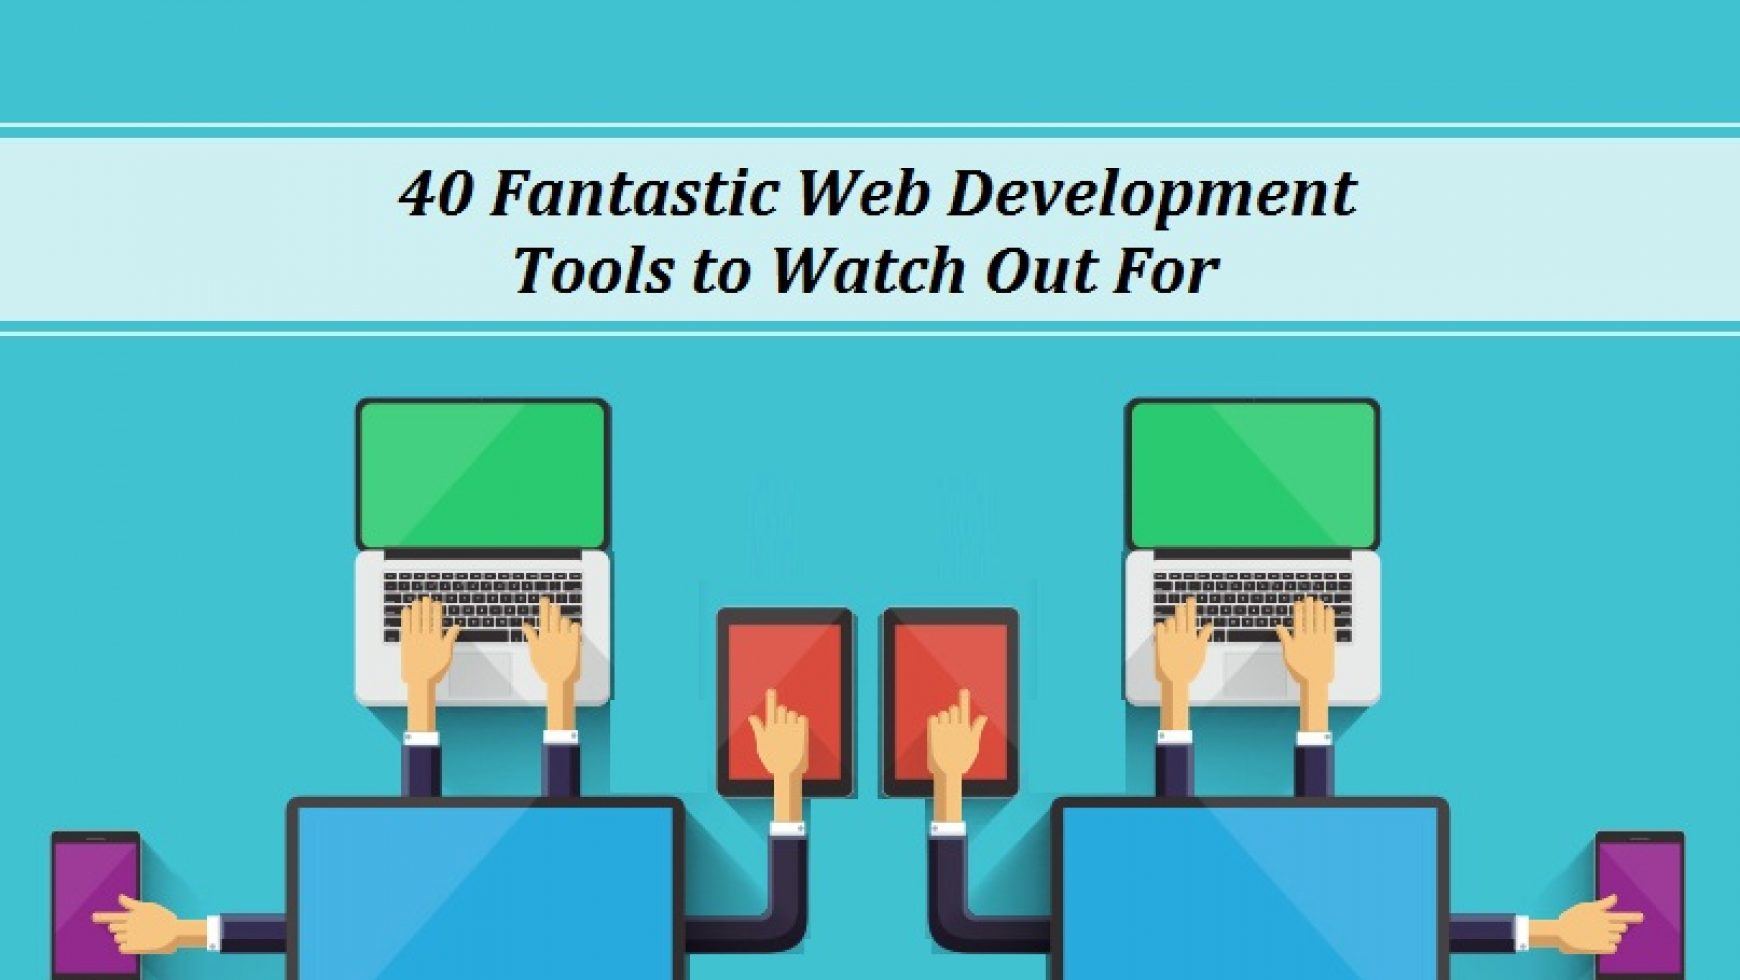 40 Fantastic Web Development Tools To Watch Out For